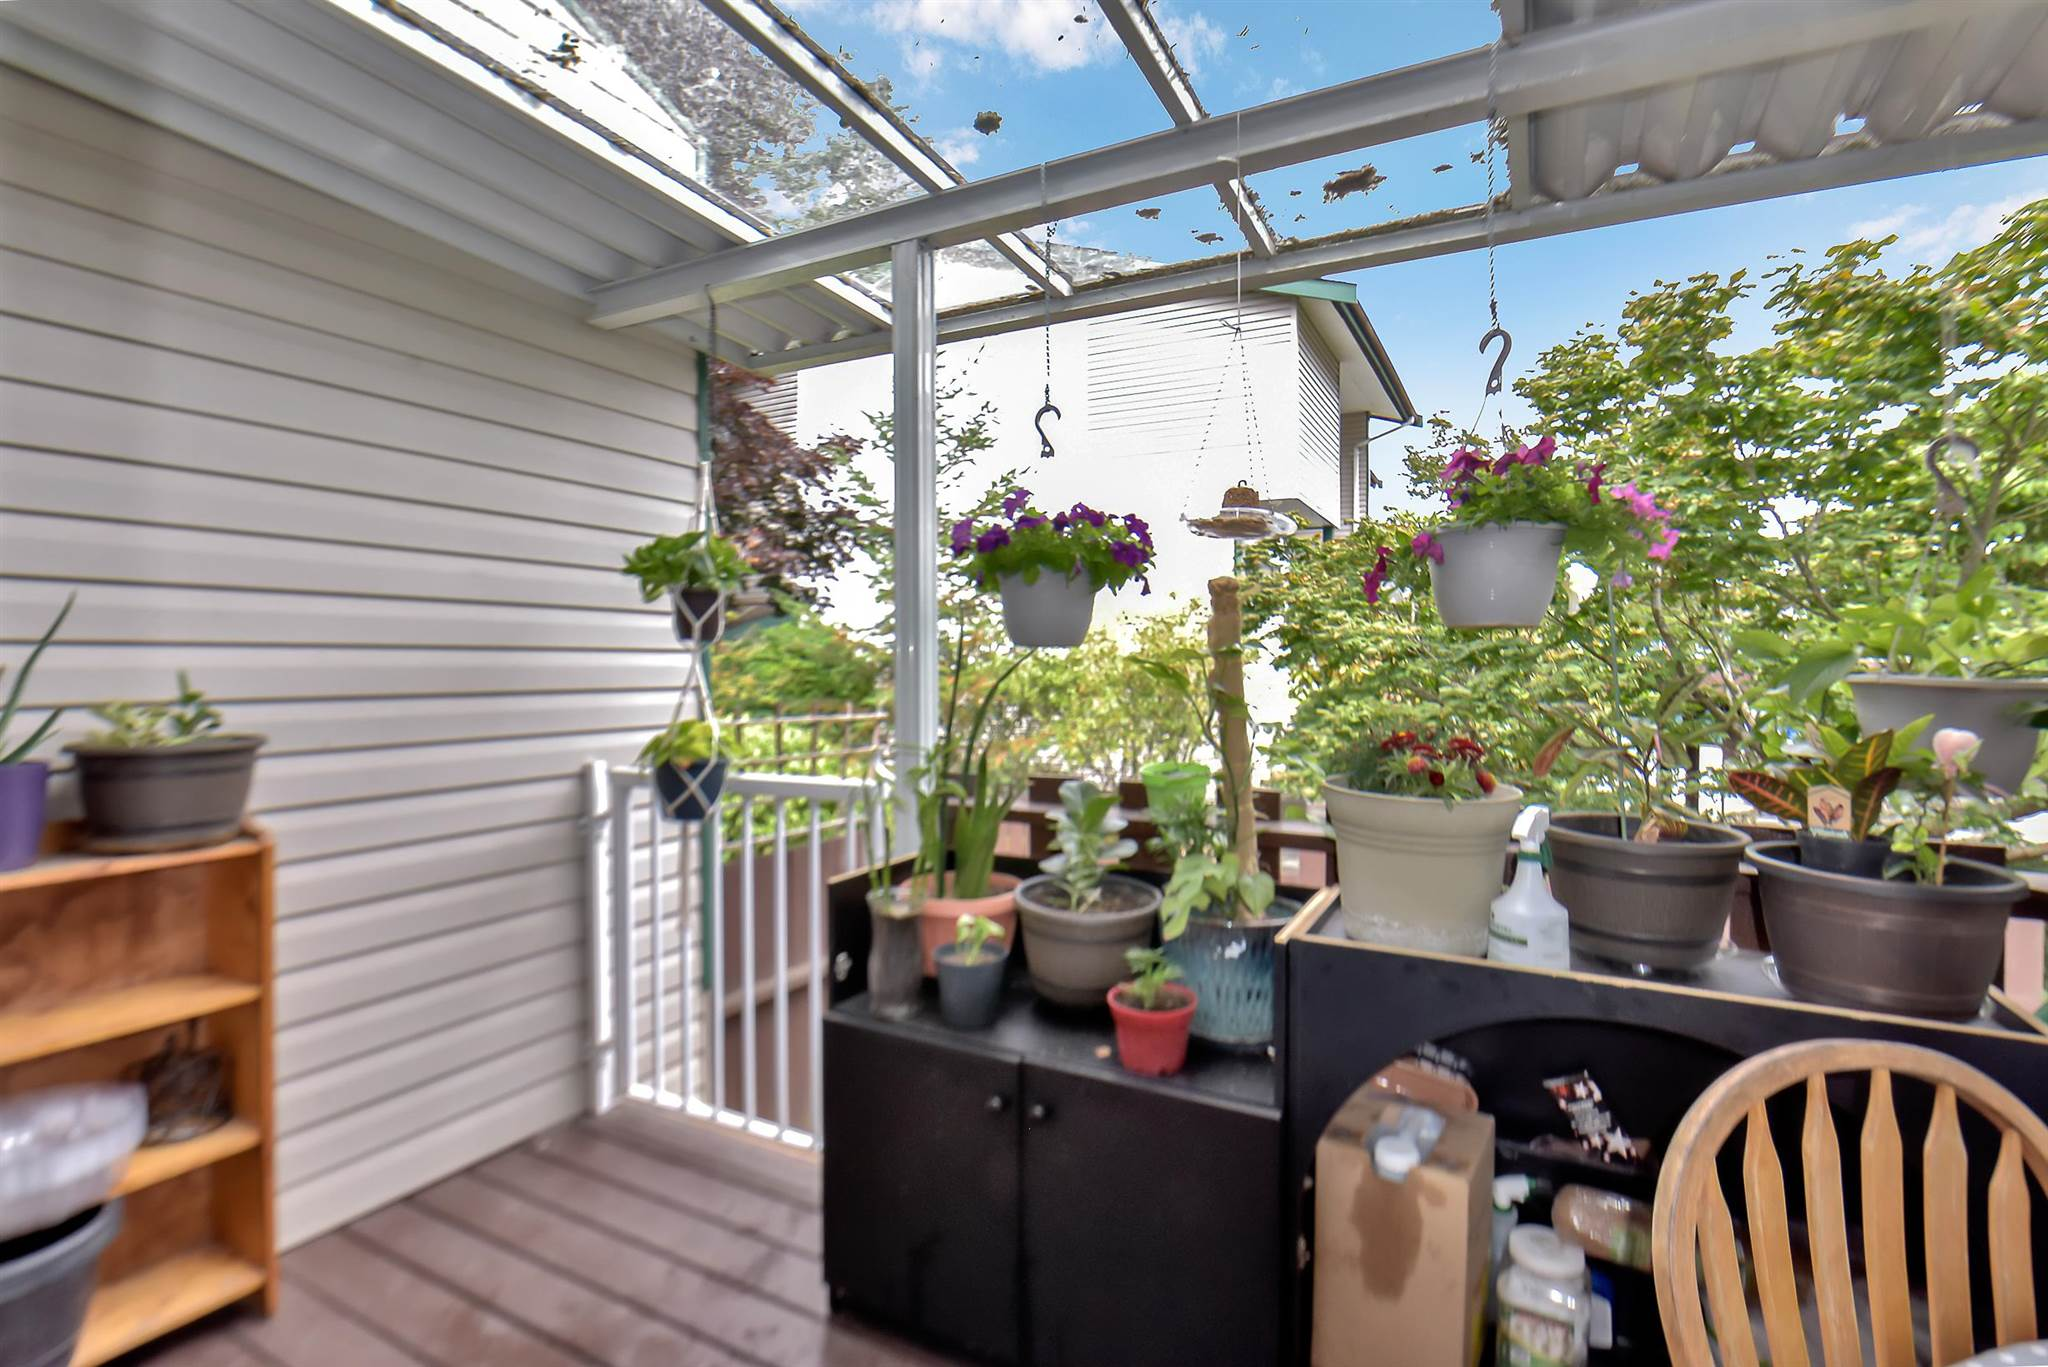 31 12045 93A AVENUE - Queen Mary Park Surrey Townhouse for sale, 4 Bedrooms (R2603608) - #22